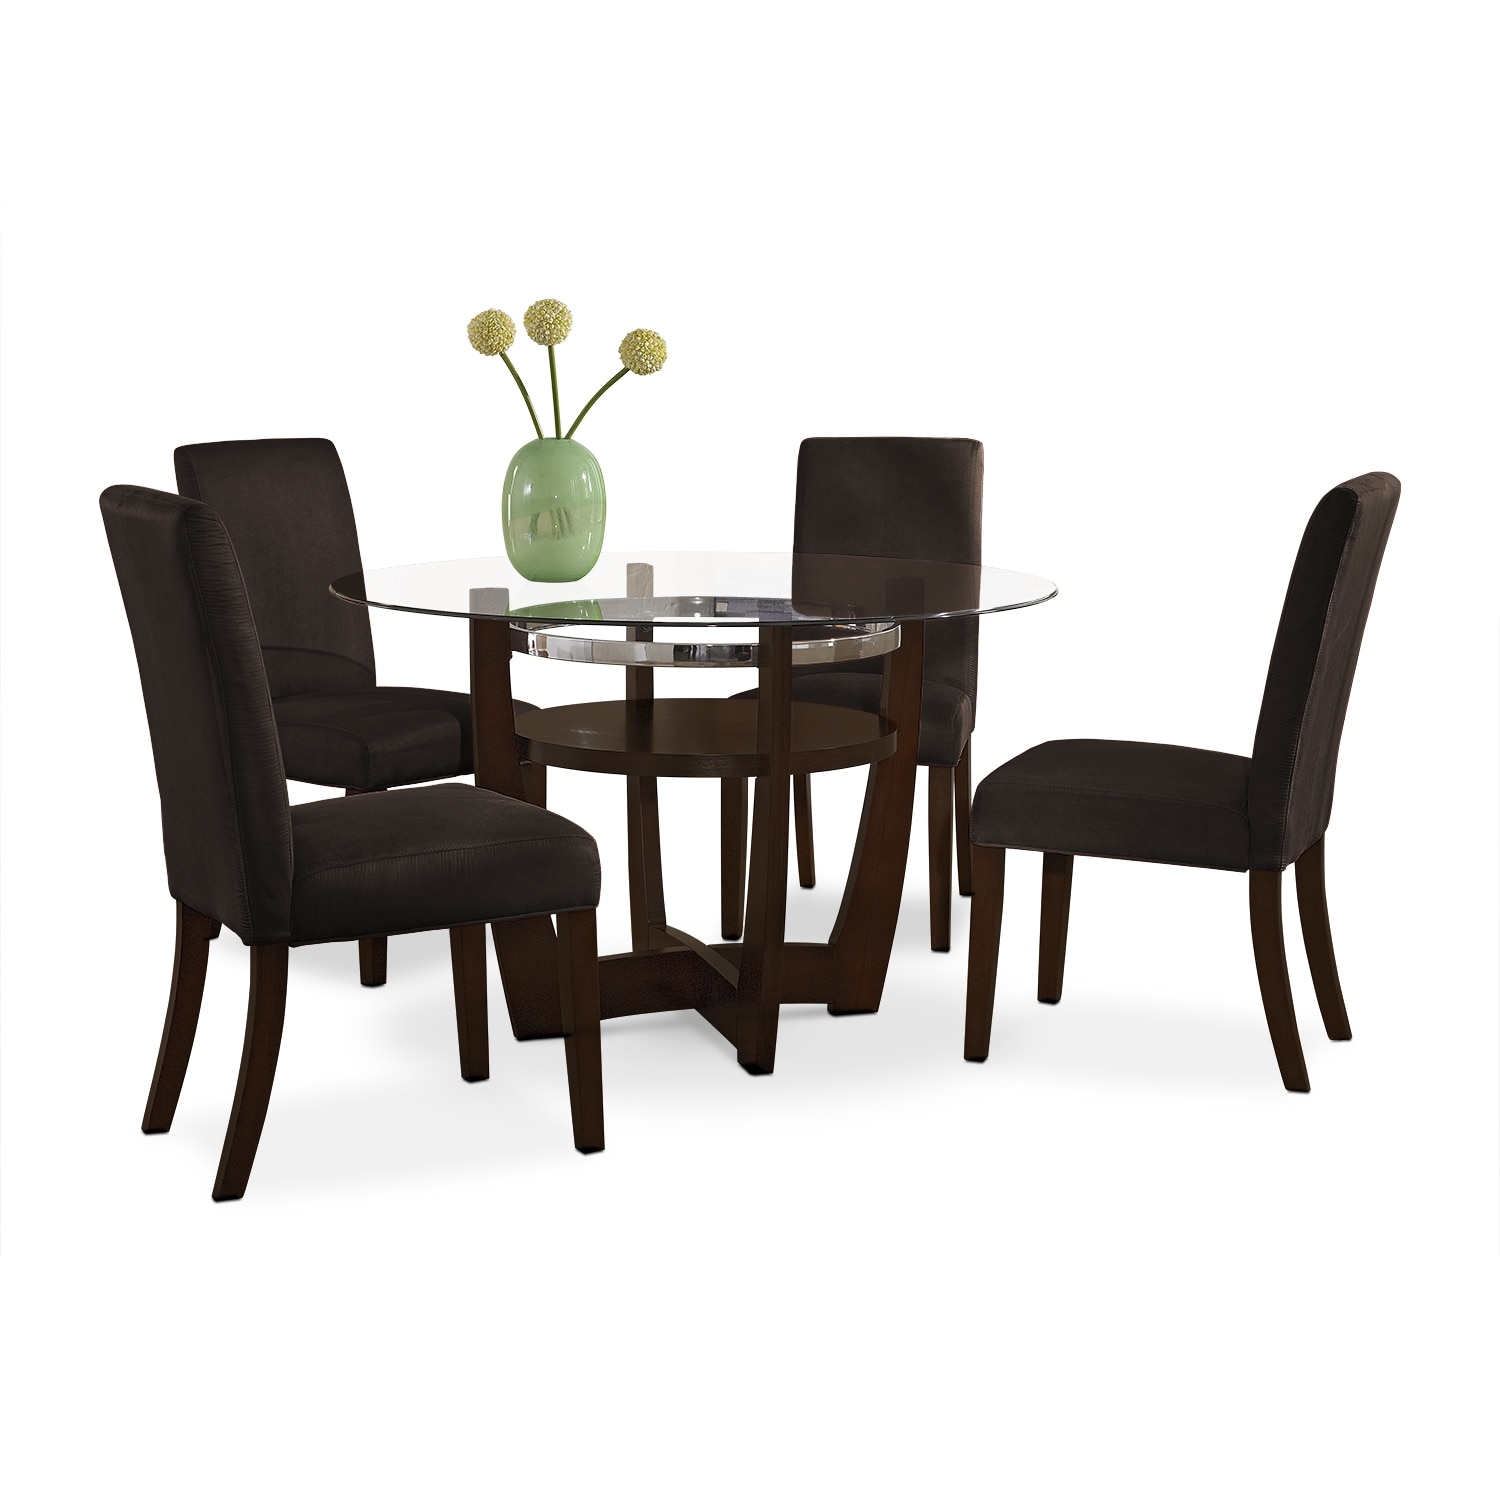 Dining Room Furniture - Alcove Dinette with 4 Side Chairs - Chocolate